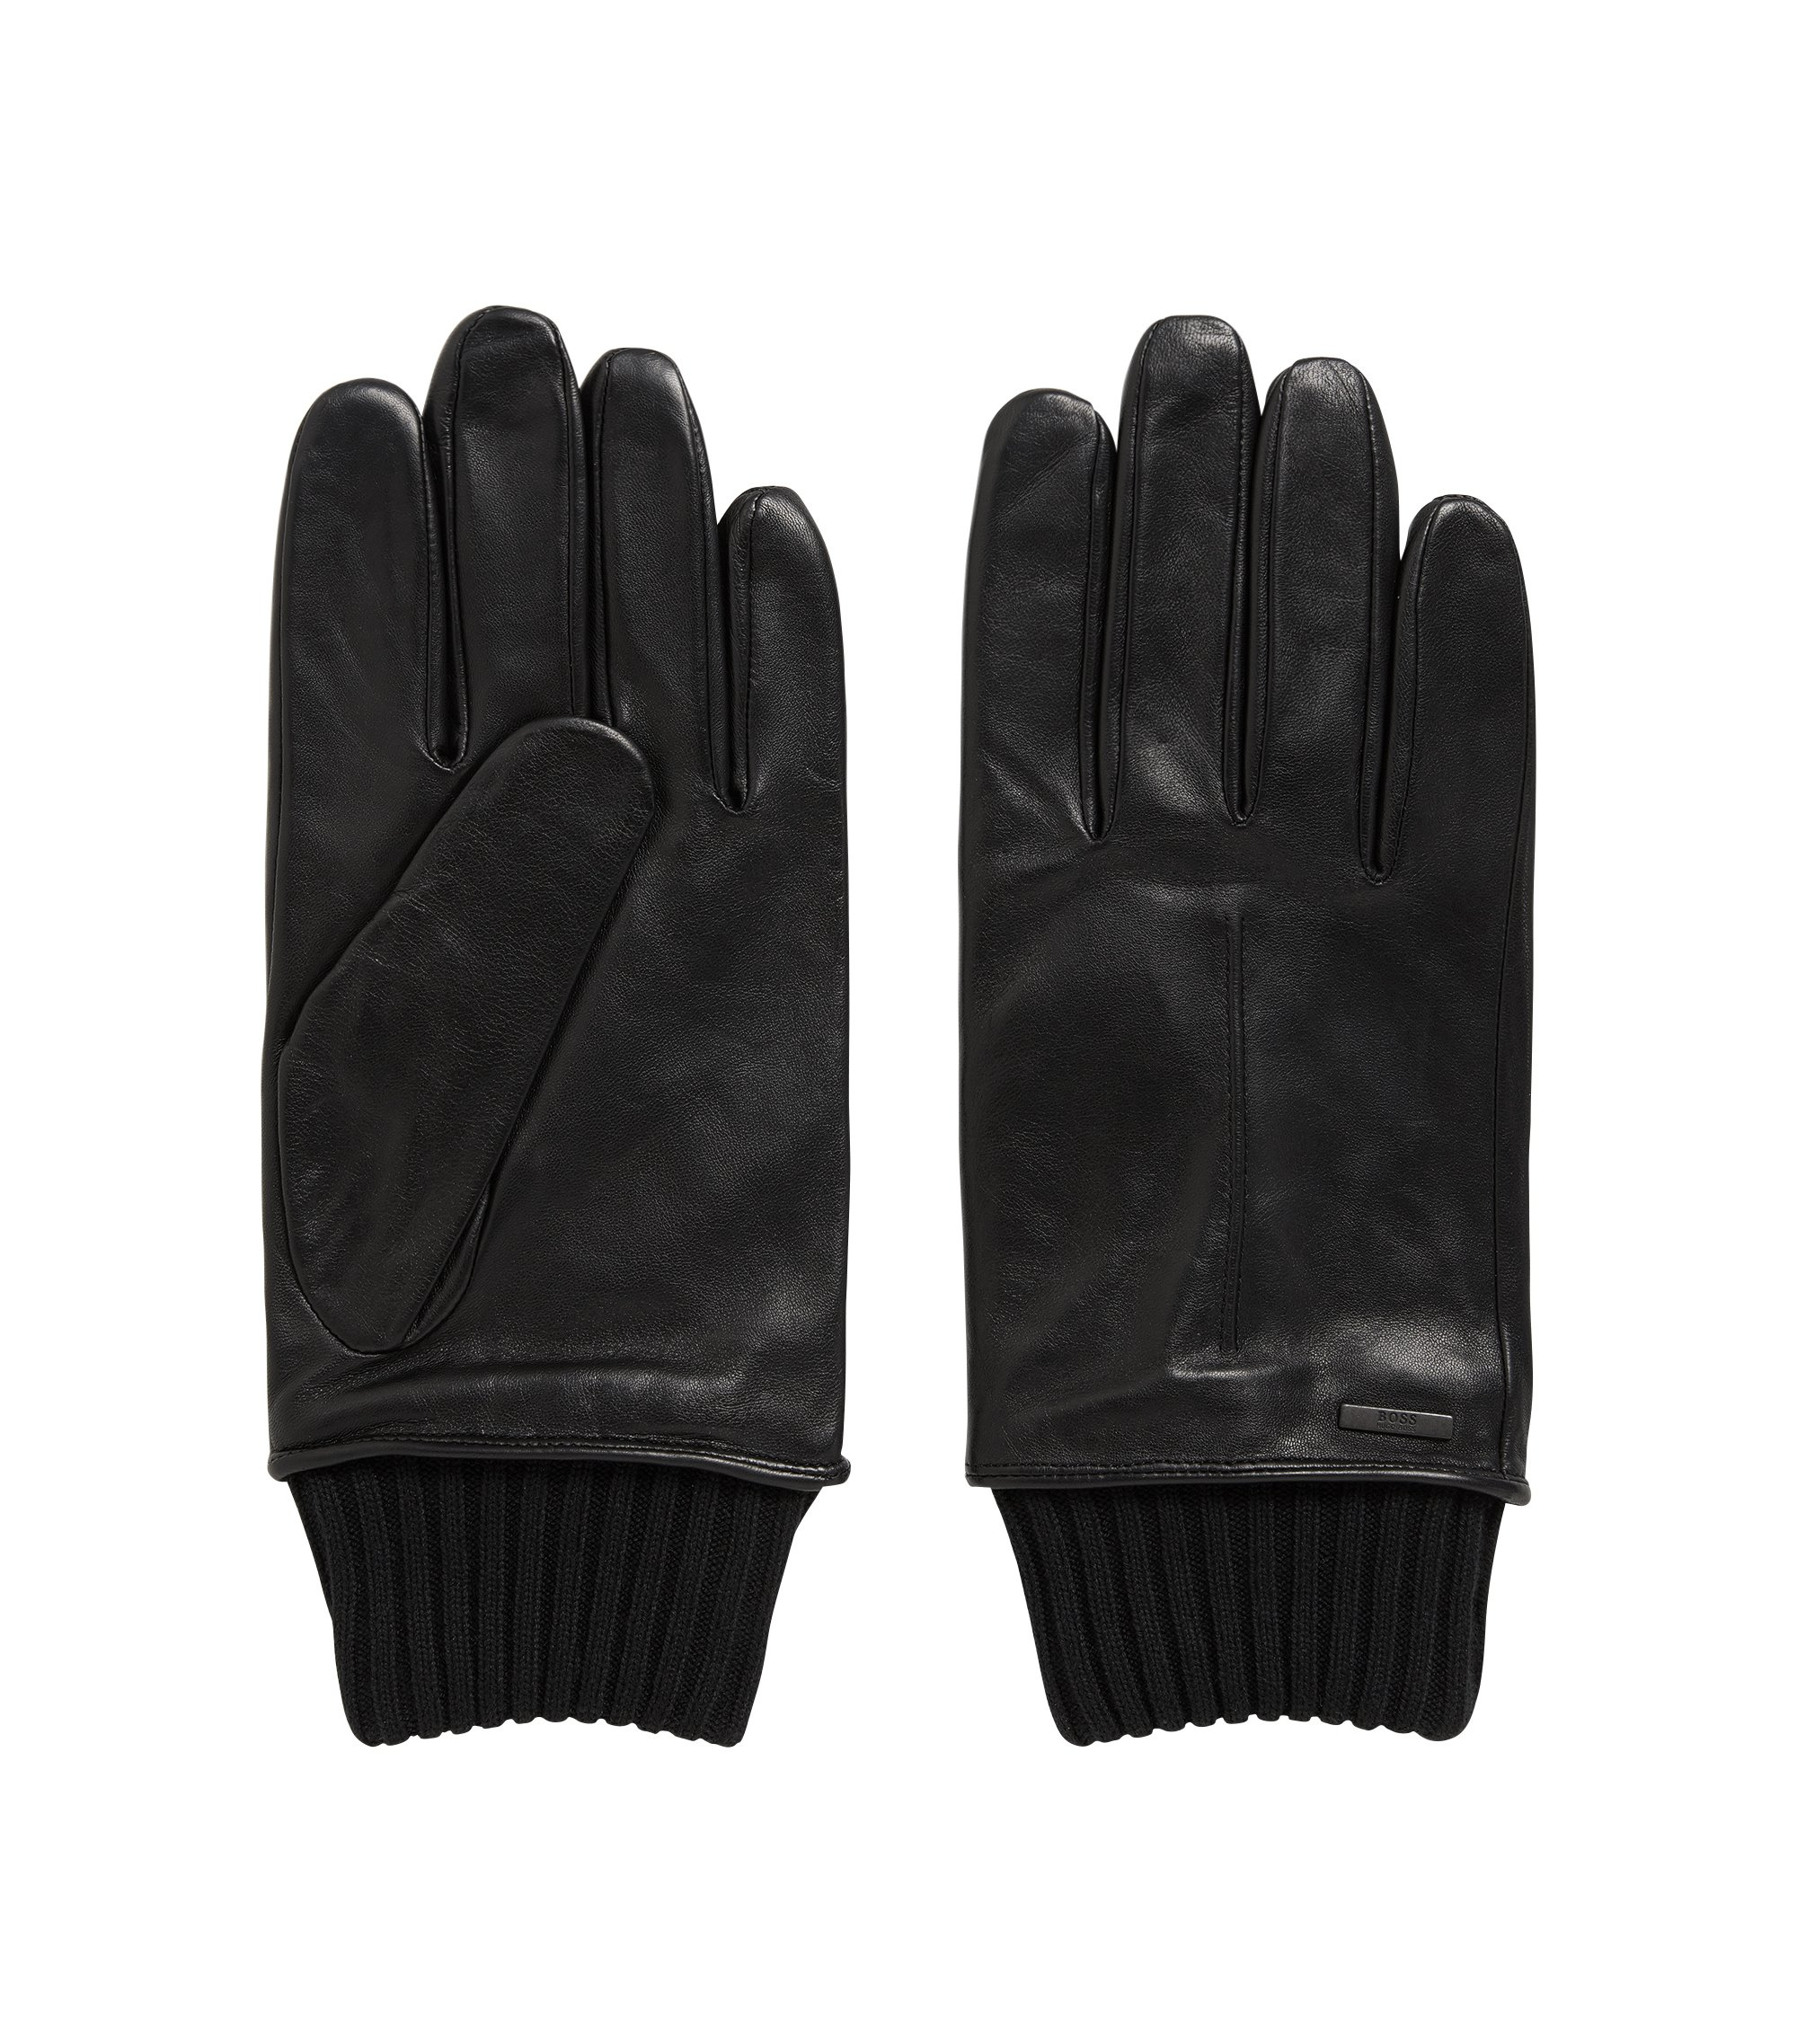 Lambskin Leather & Wool Blend Knit Glove | Harmyn WS, Black